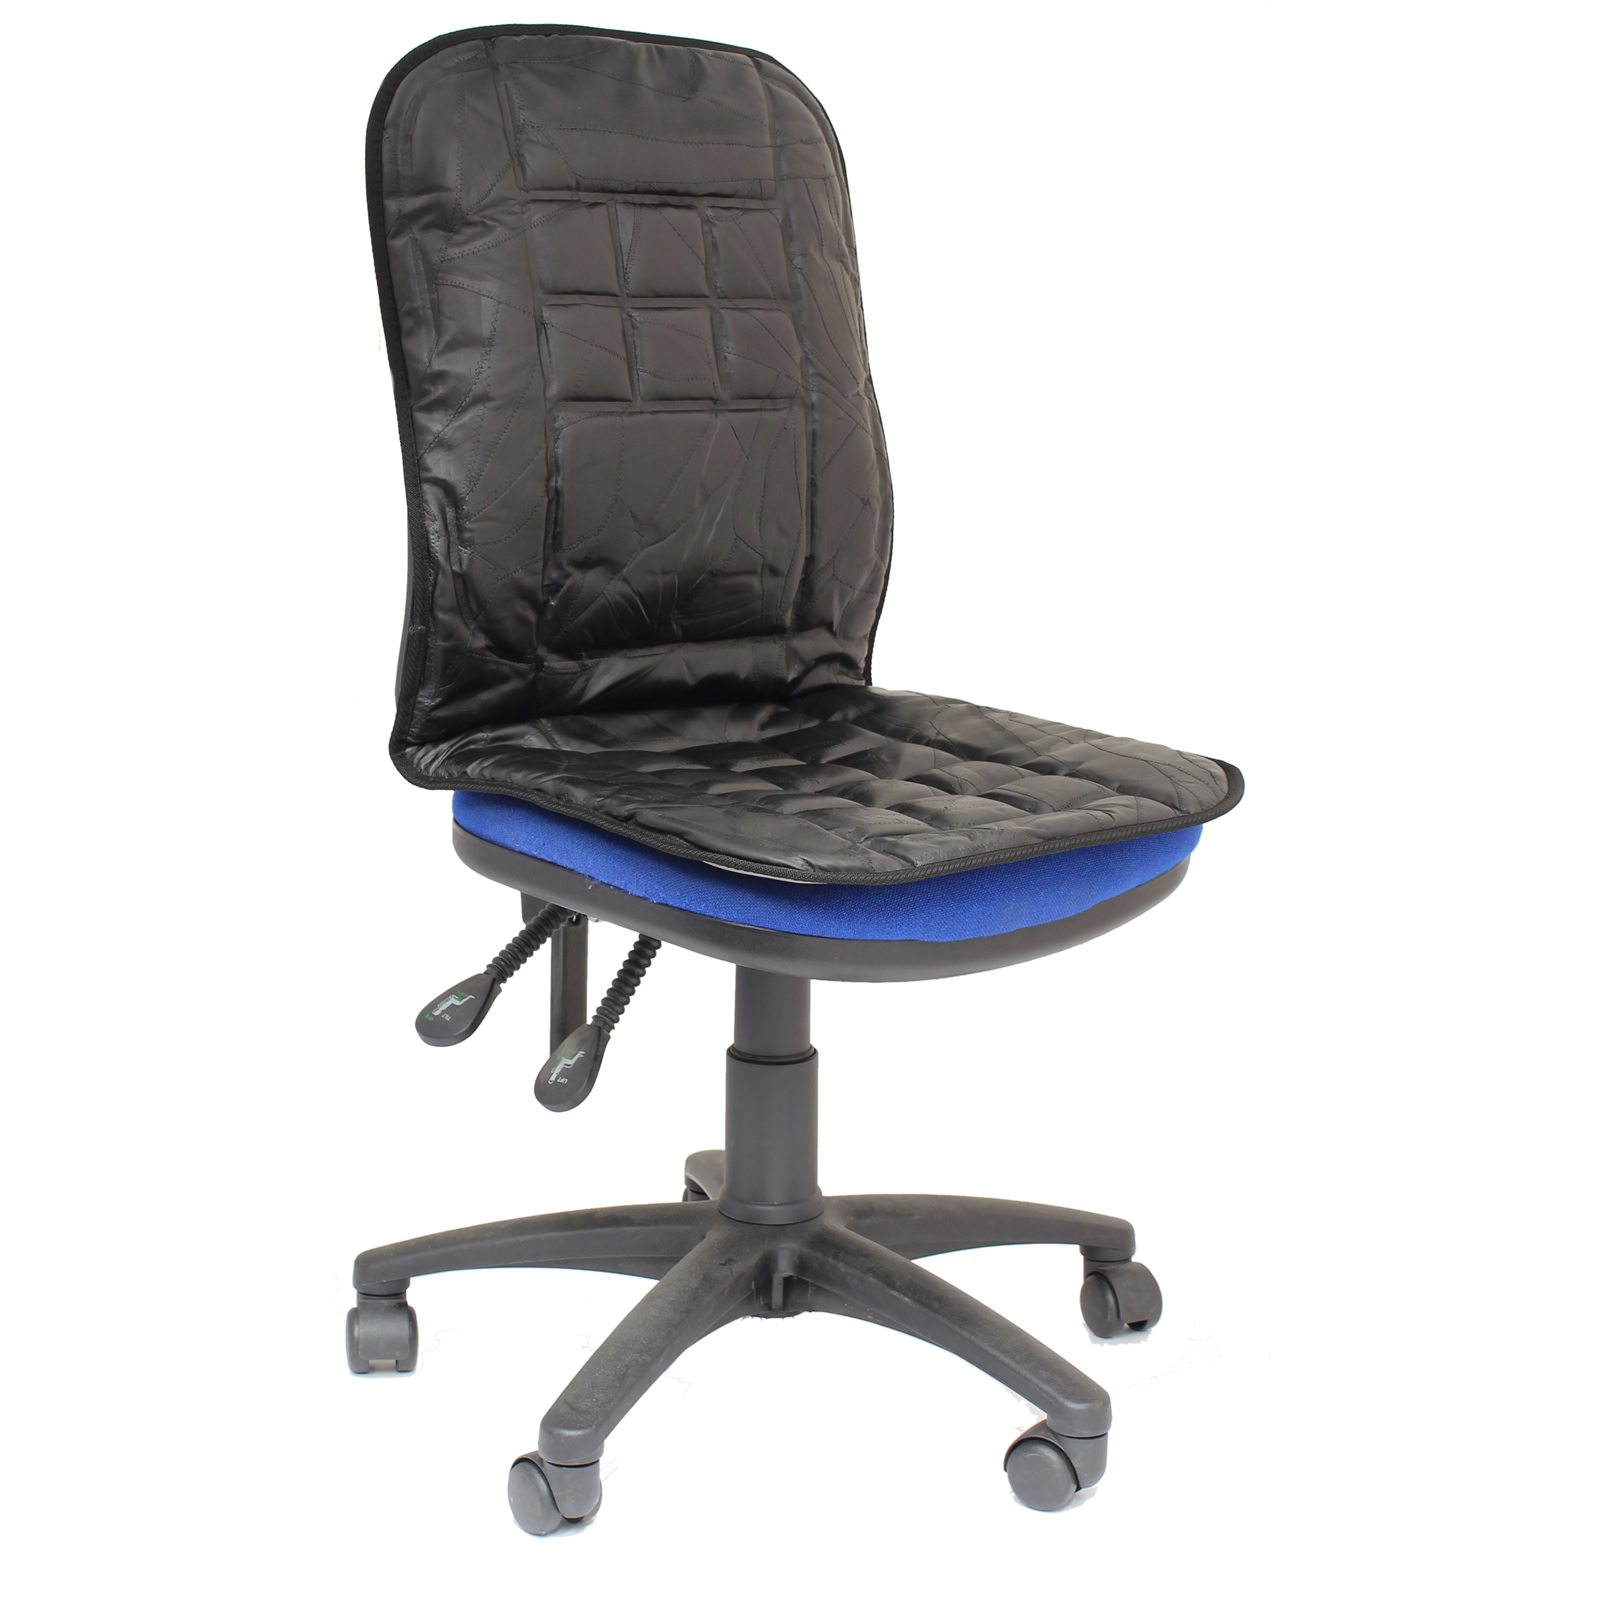 massage pads for chair biggest bean bag in the world orthopaedic leather desk office back seat cushion